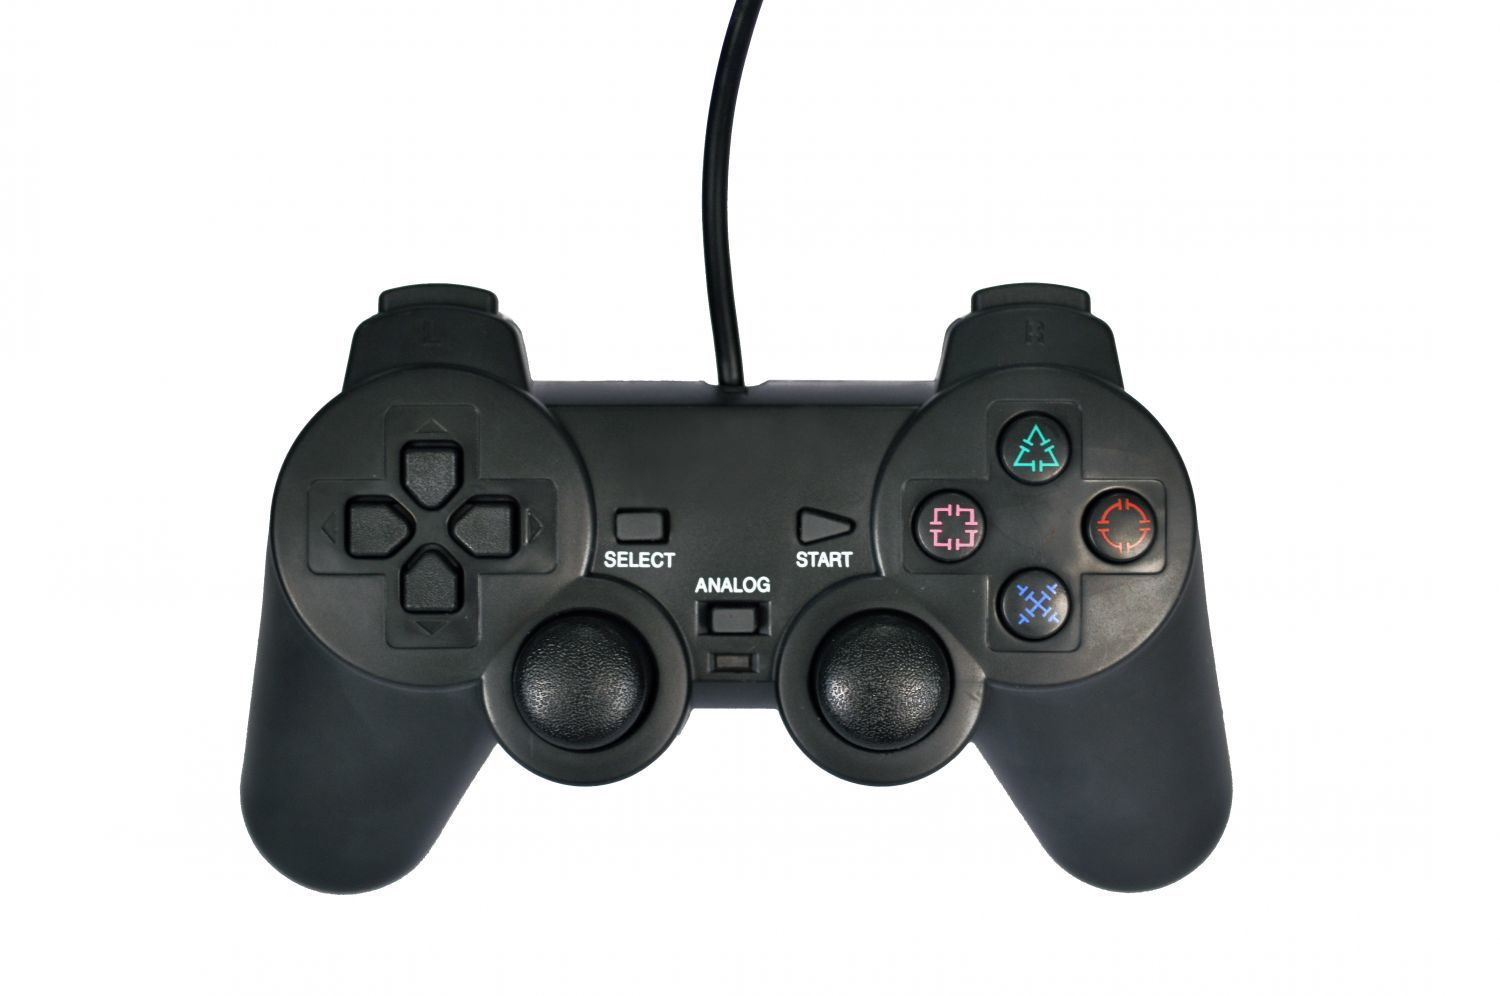 Piranha PC Controller for PC Games image